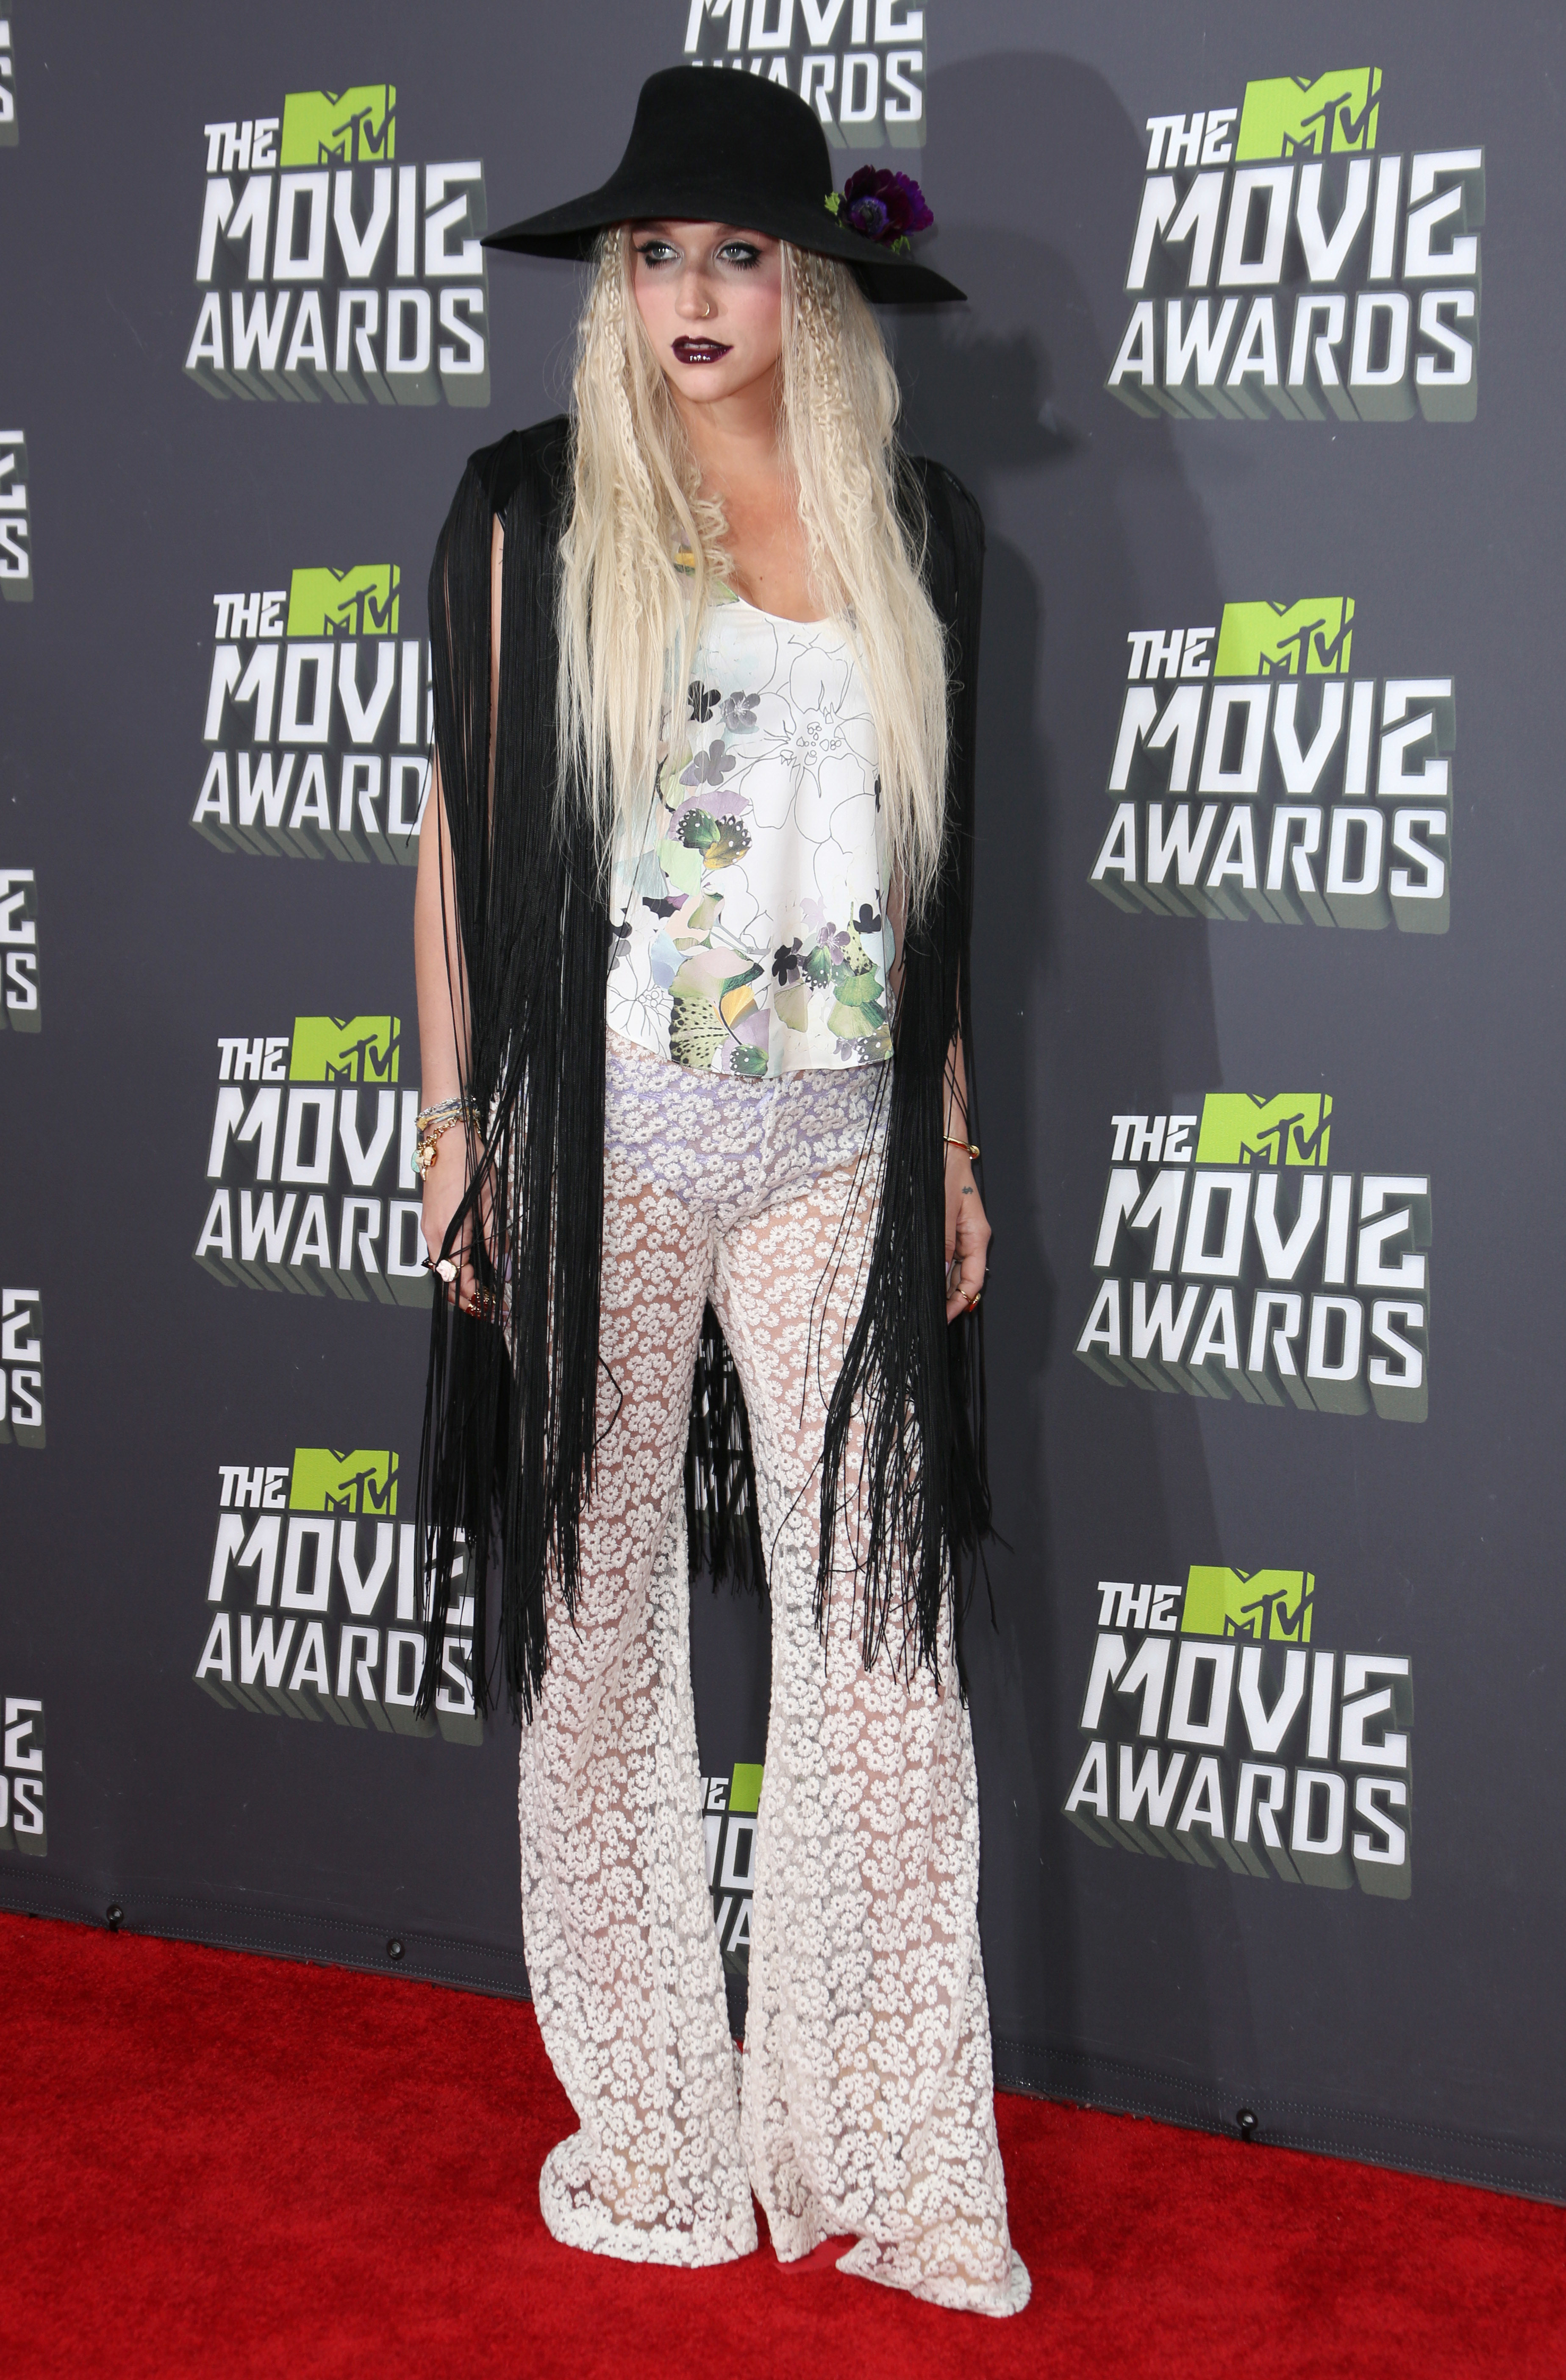 Ke$ha attends the 2013 MTV Movie Awards in Los Angeles on April 14, 2013.